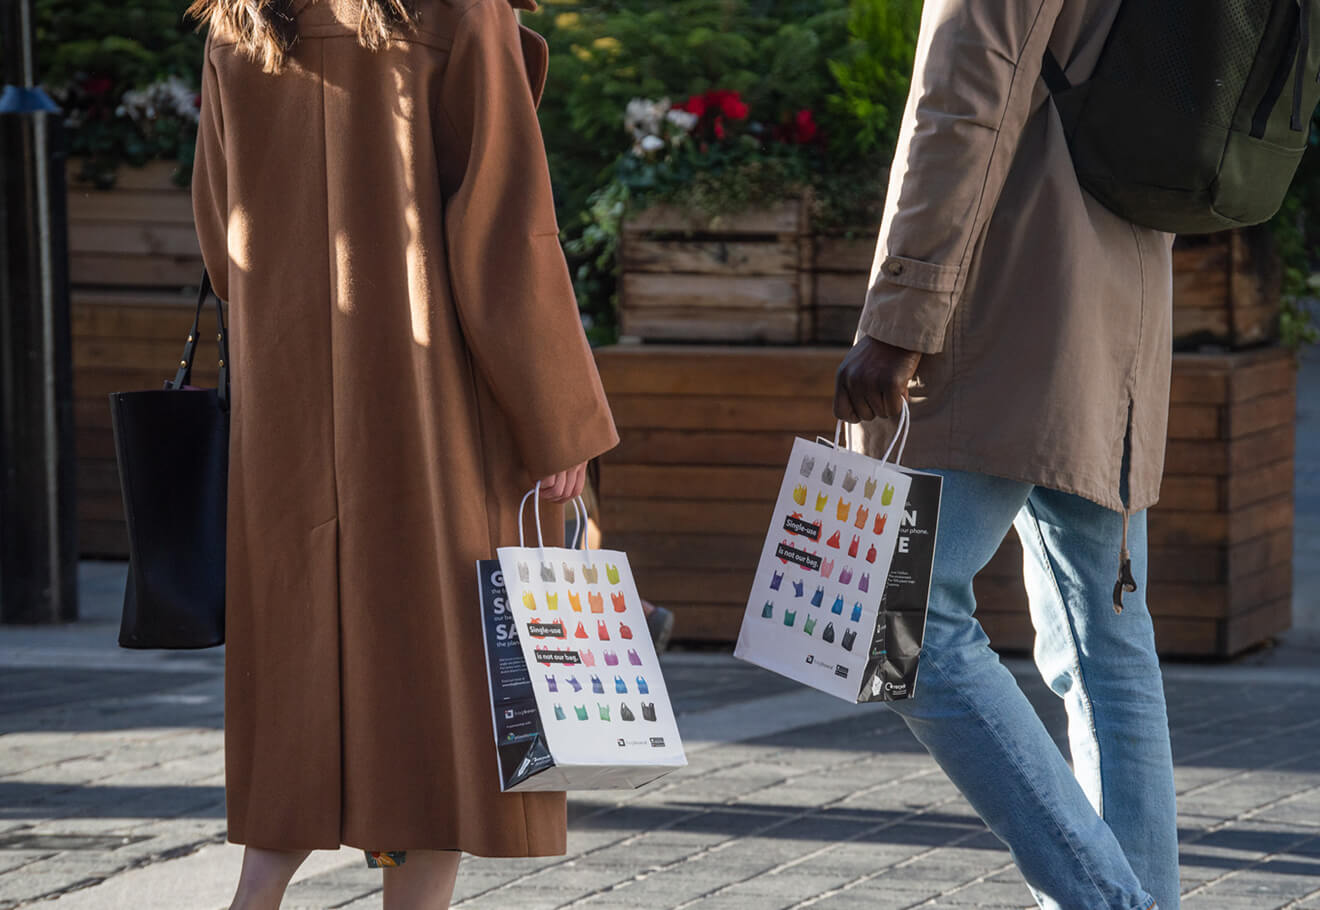 People holding reusable paper bags